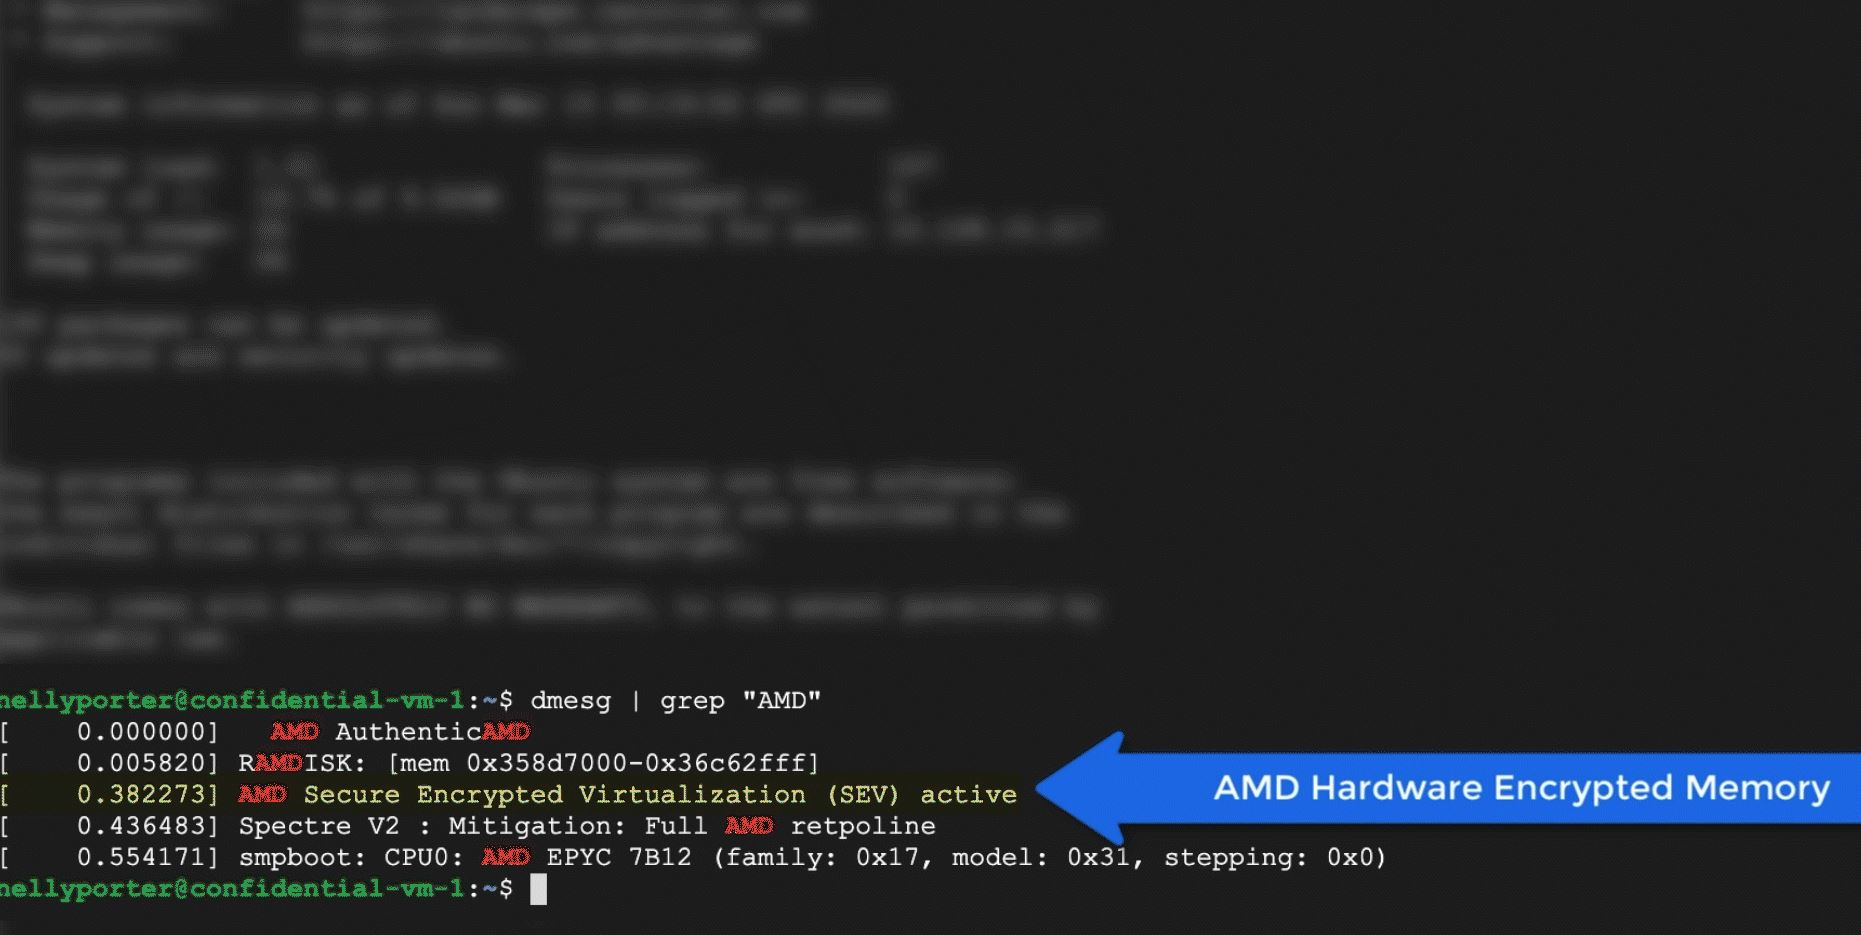 Google Confidential VM SEV Enabled On AMD EPYC 7B12 CPU